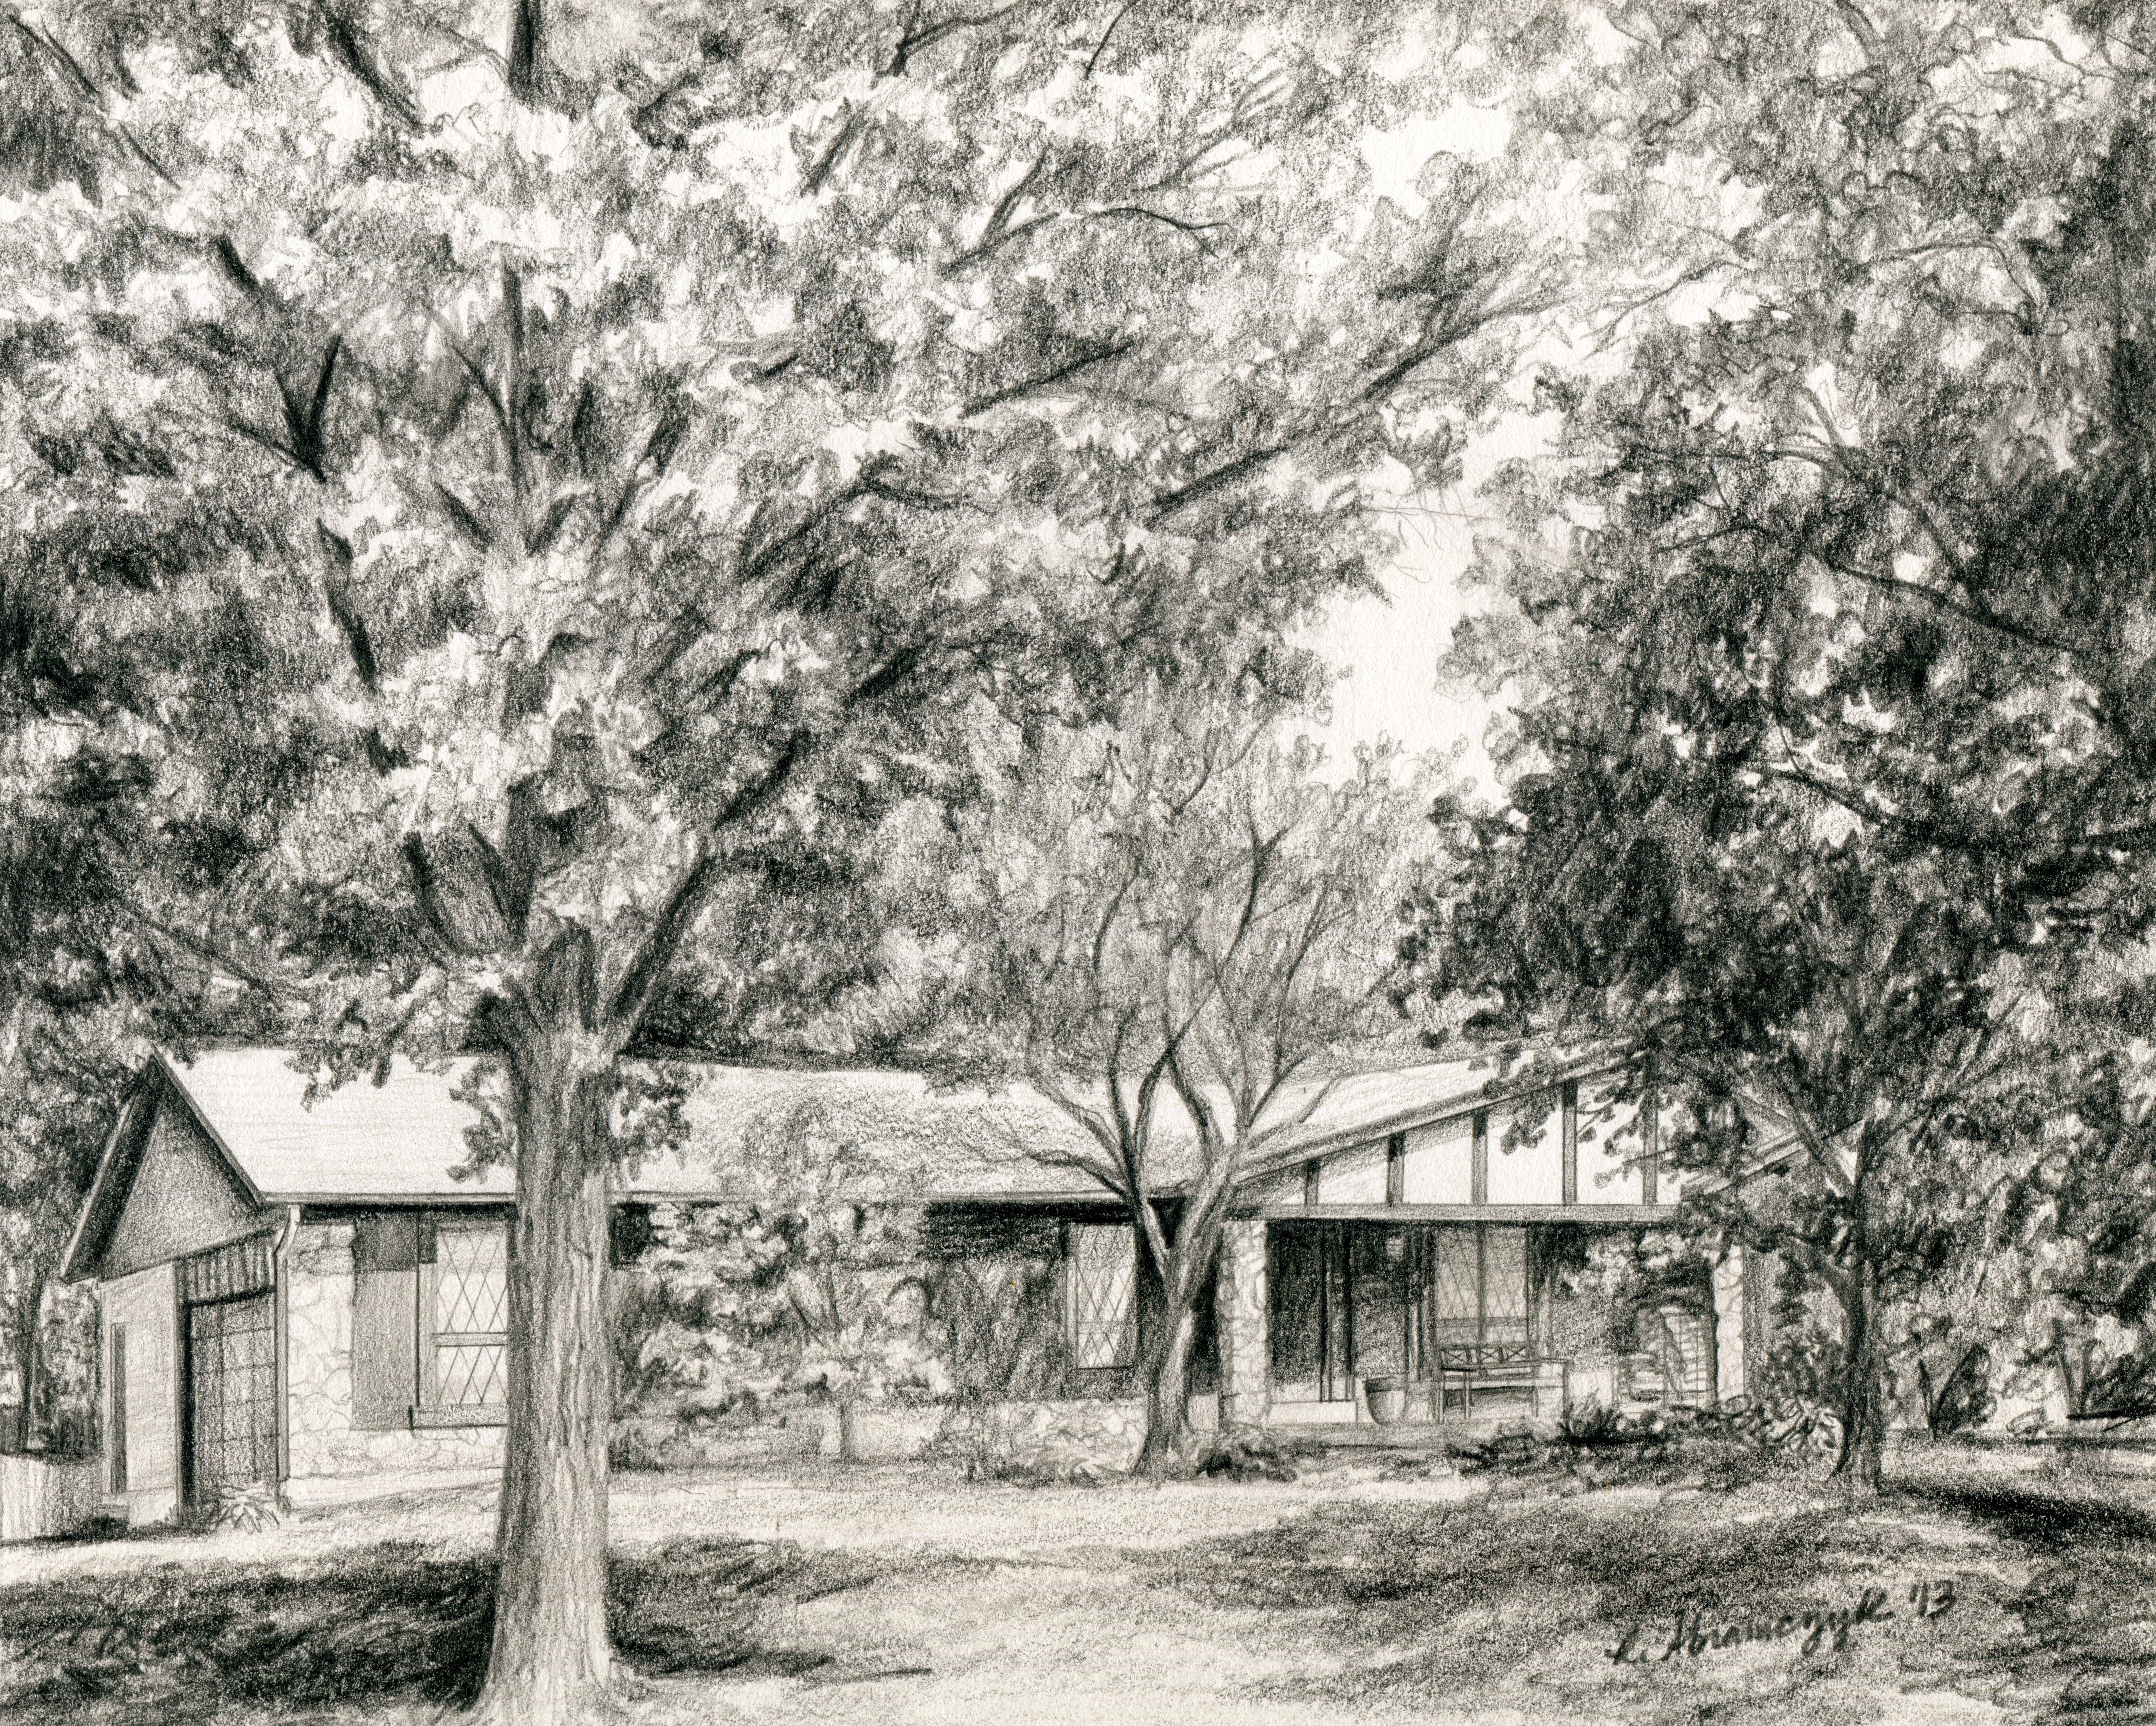 The Bruce Family Home, by Rosie Abramczyk, Pencil, 2013